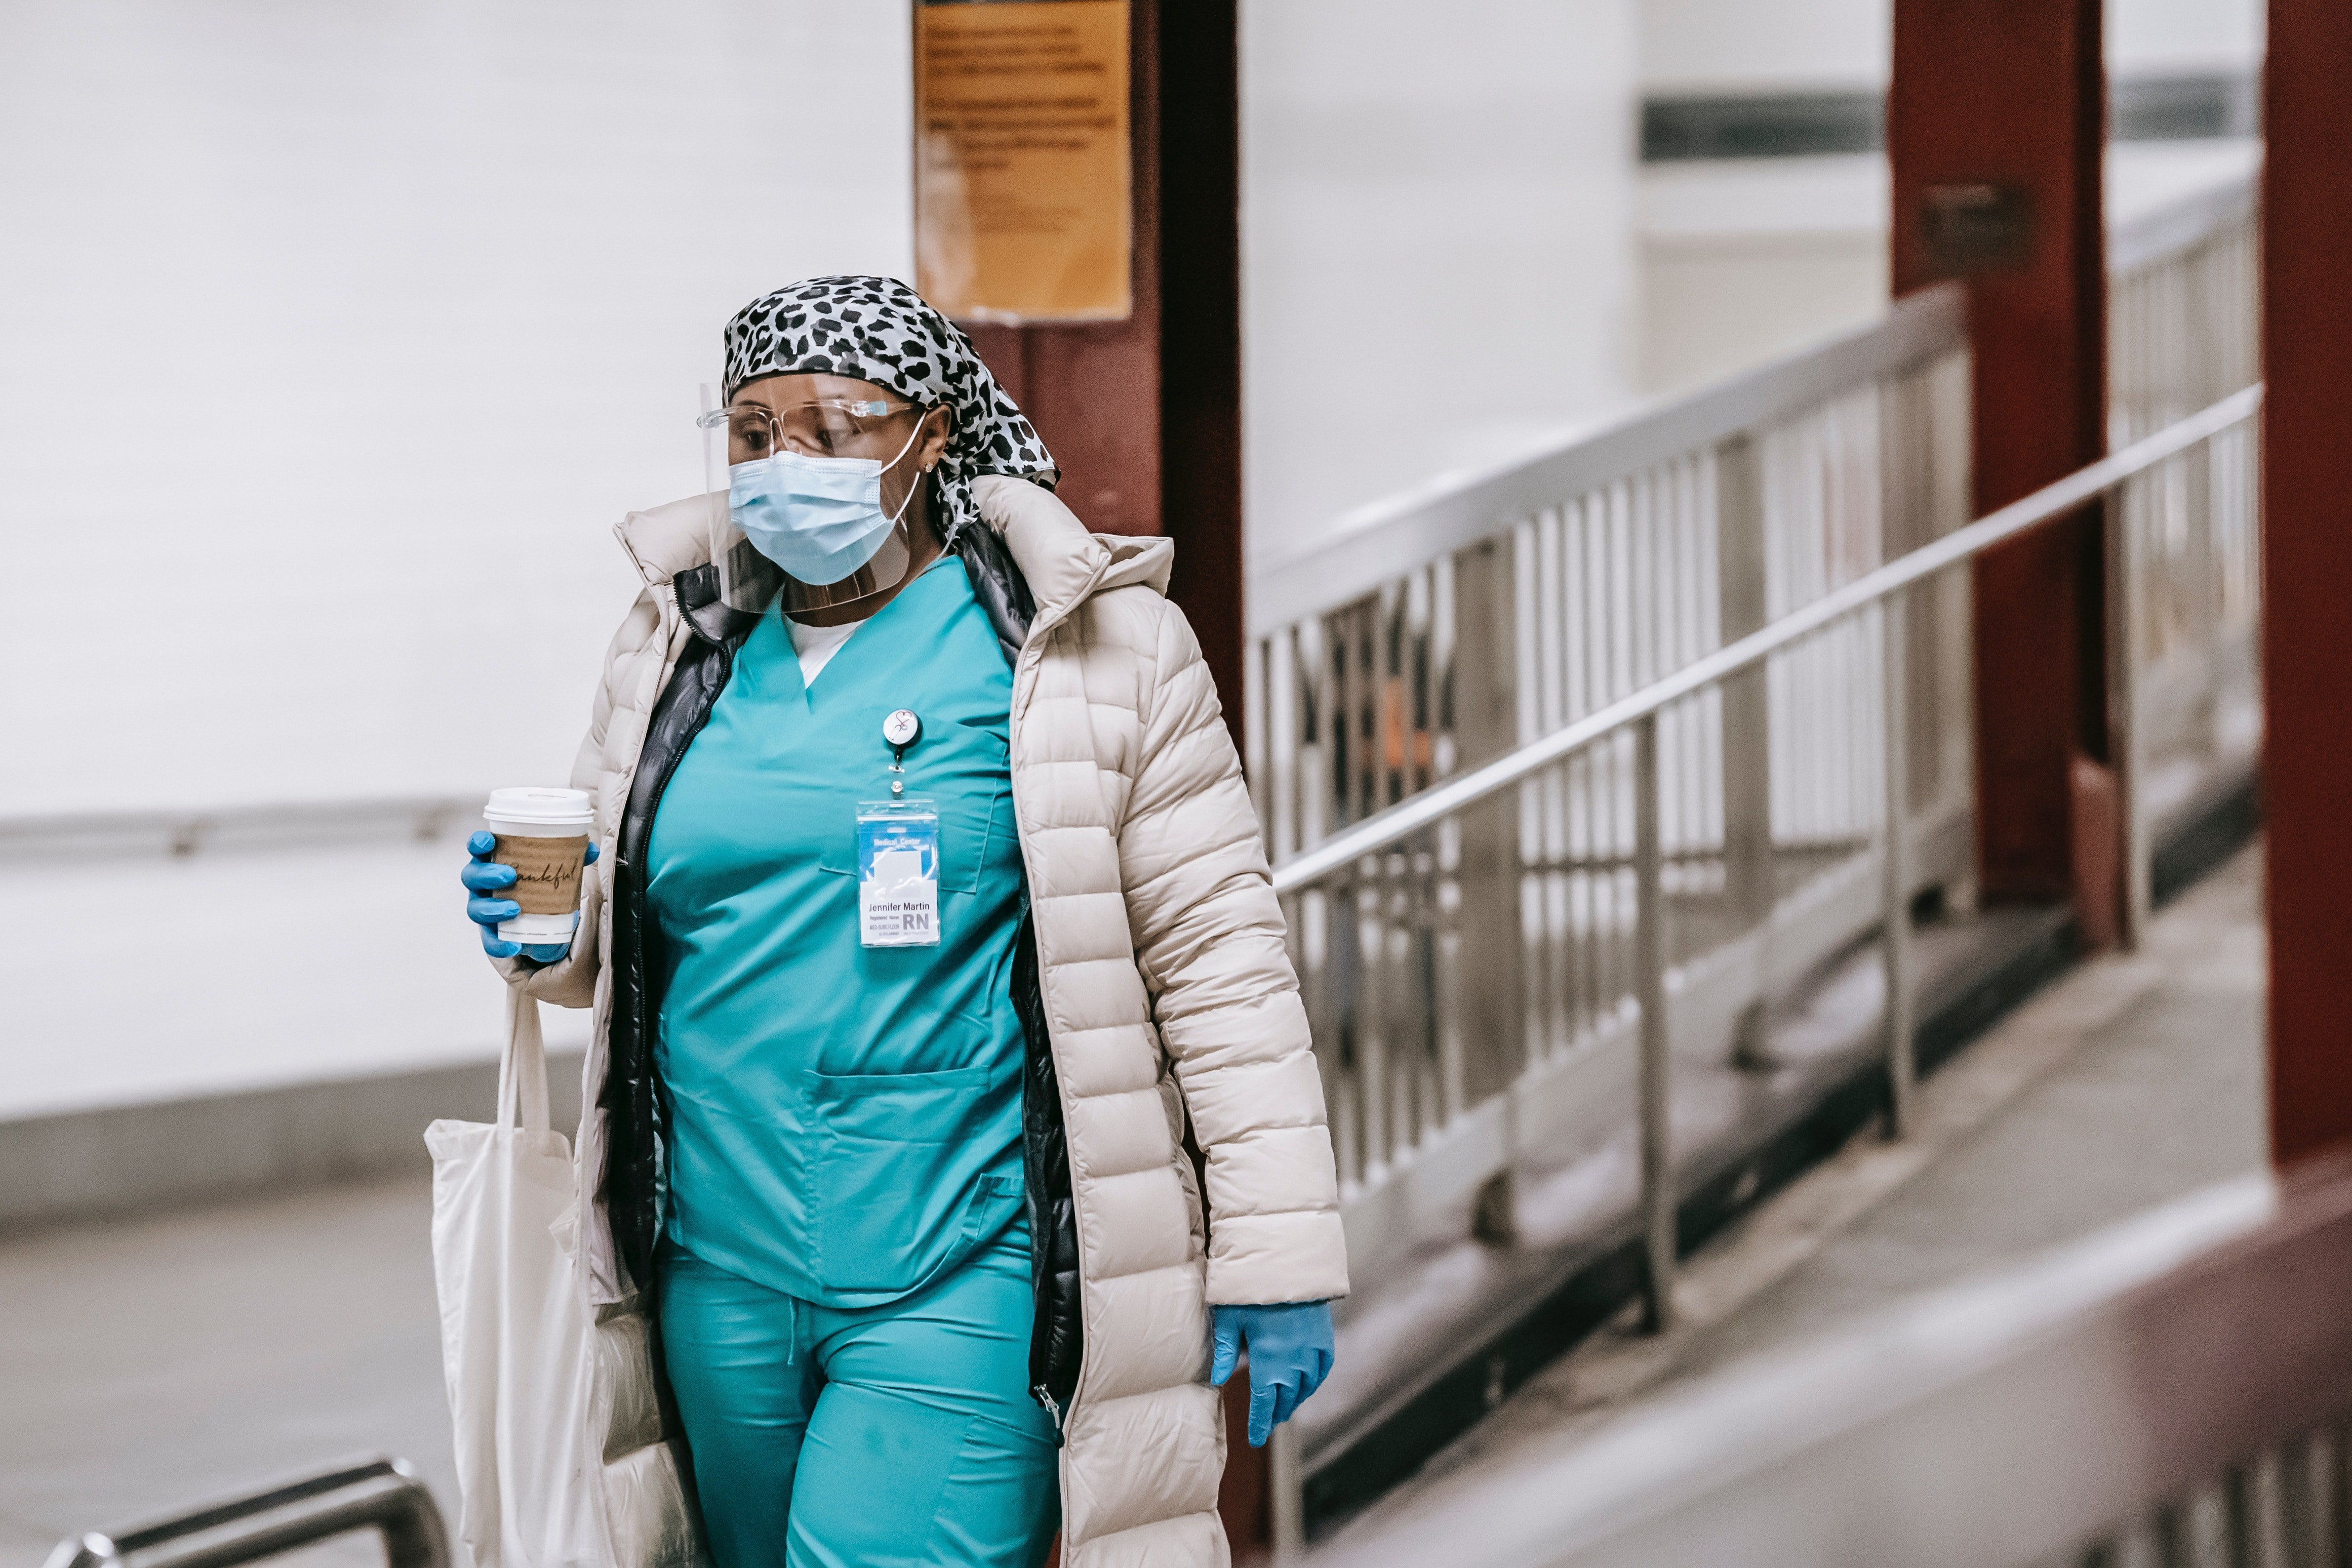 Pictured - A black female in a nurse uniform wearing protective mask and gloves | Source: Pexels